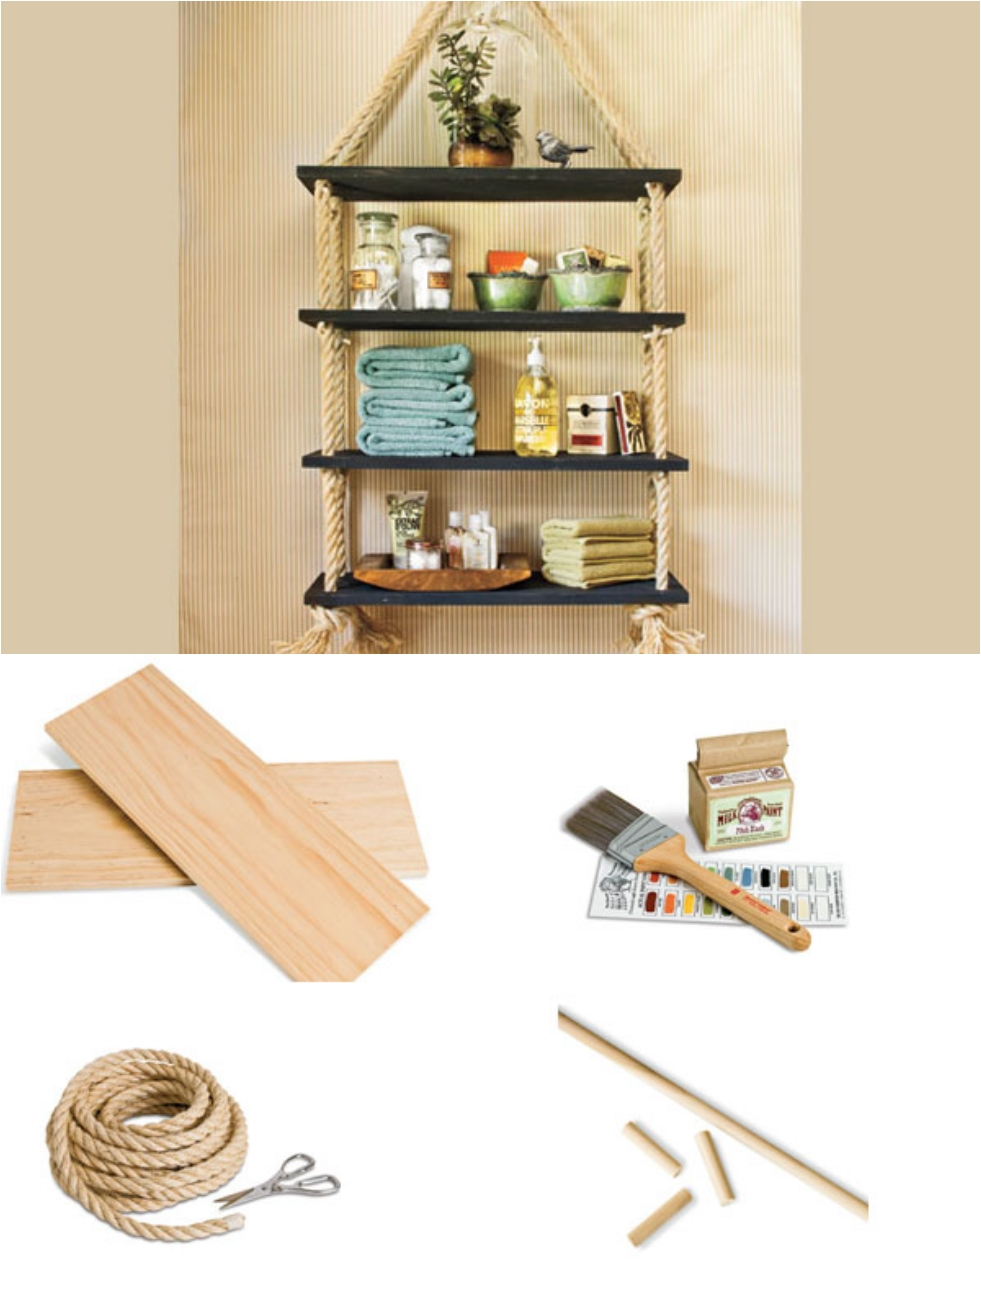 31 DIY Hanging Shelves Perfect for Every Room in Your Home - Ritely